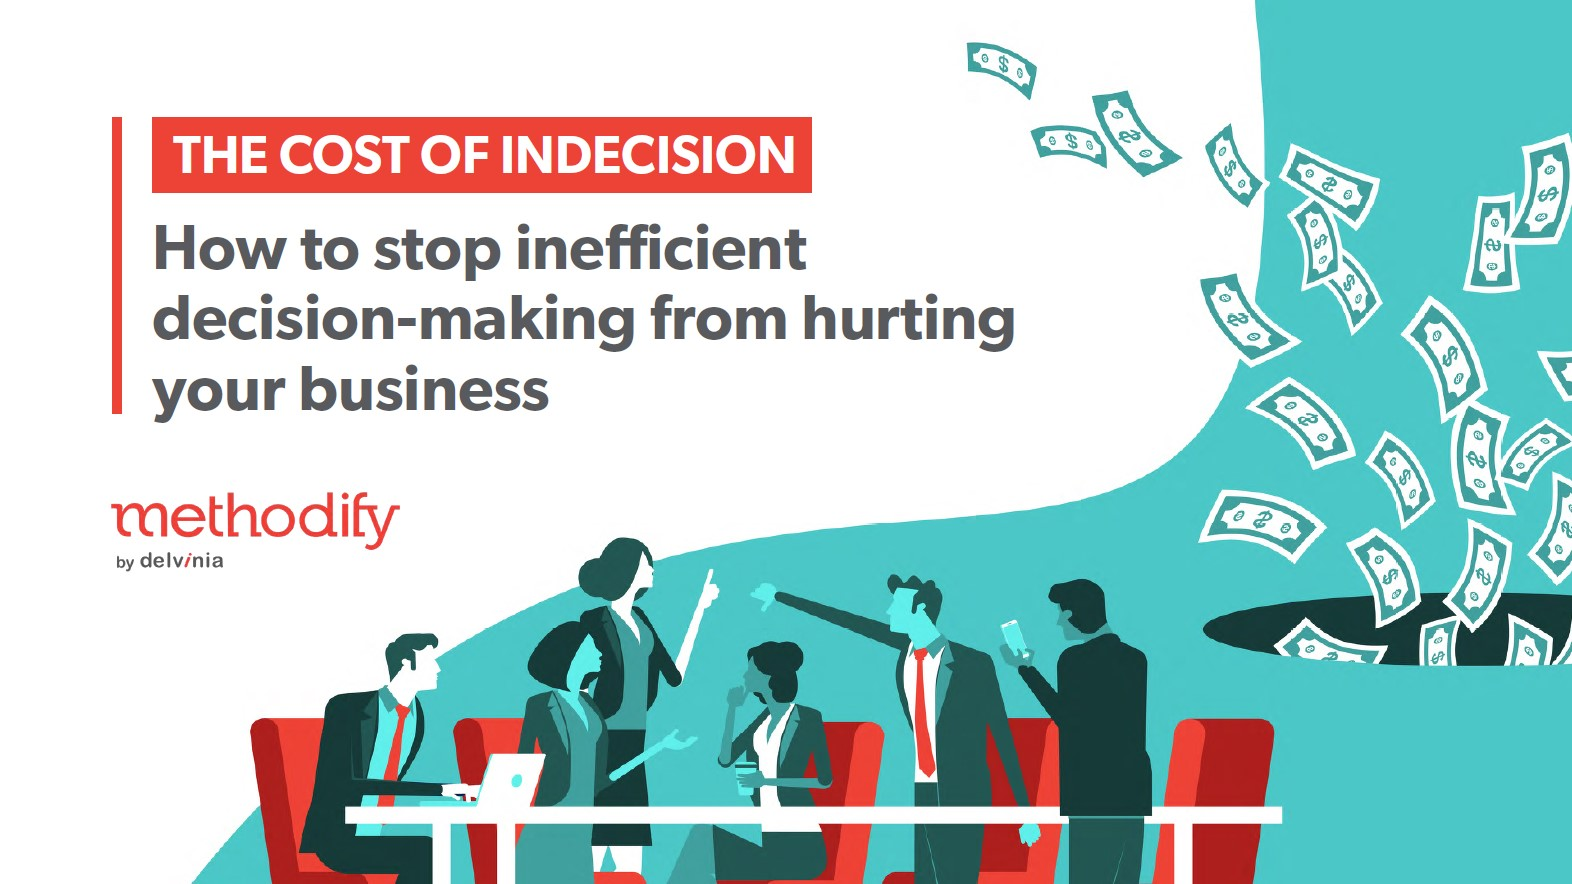 How to stop inefficient decision-making from hurting your business.